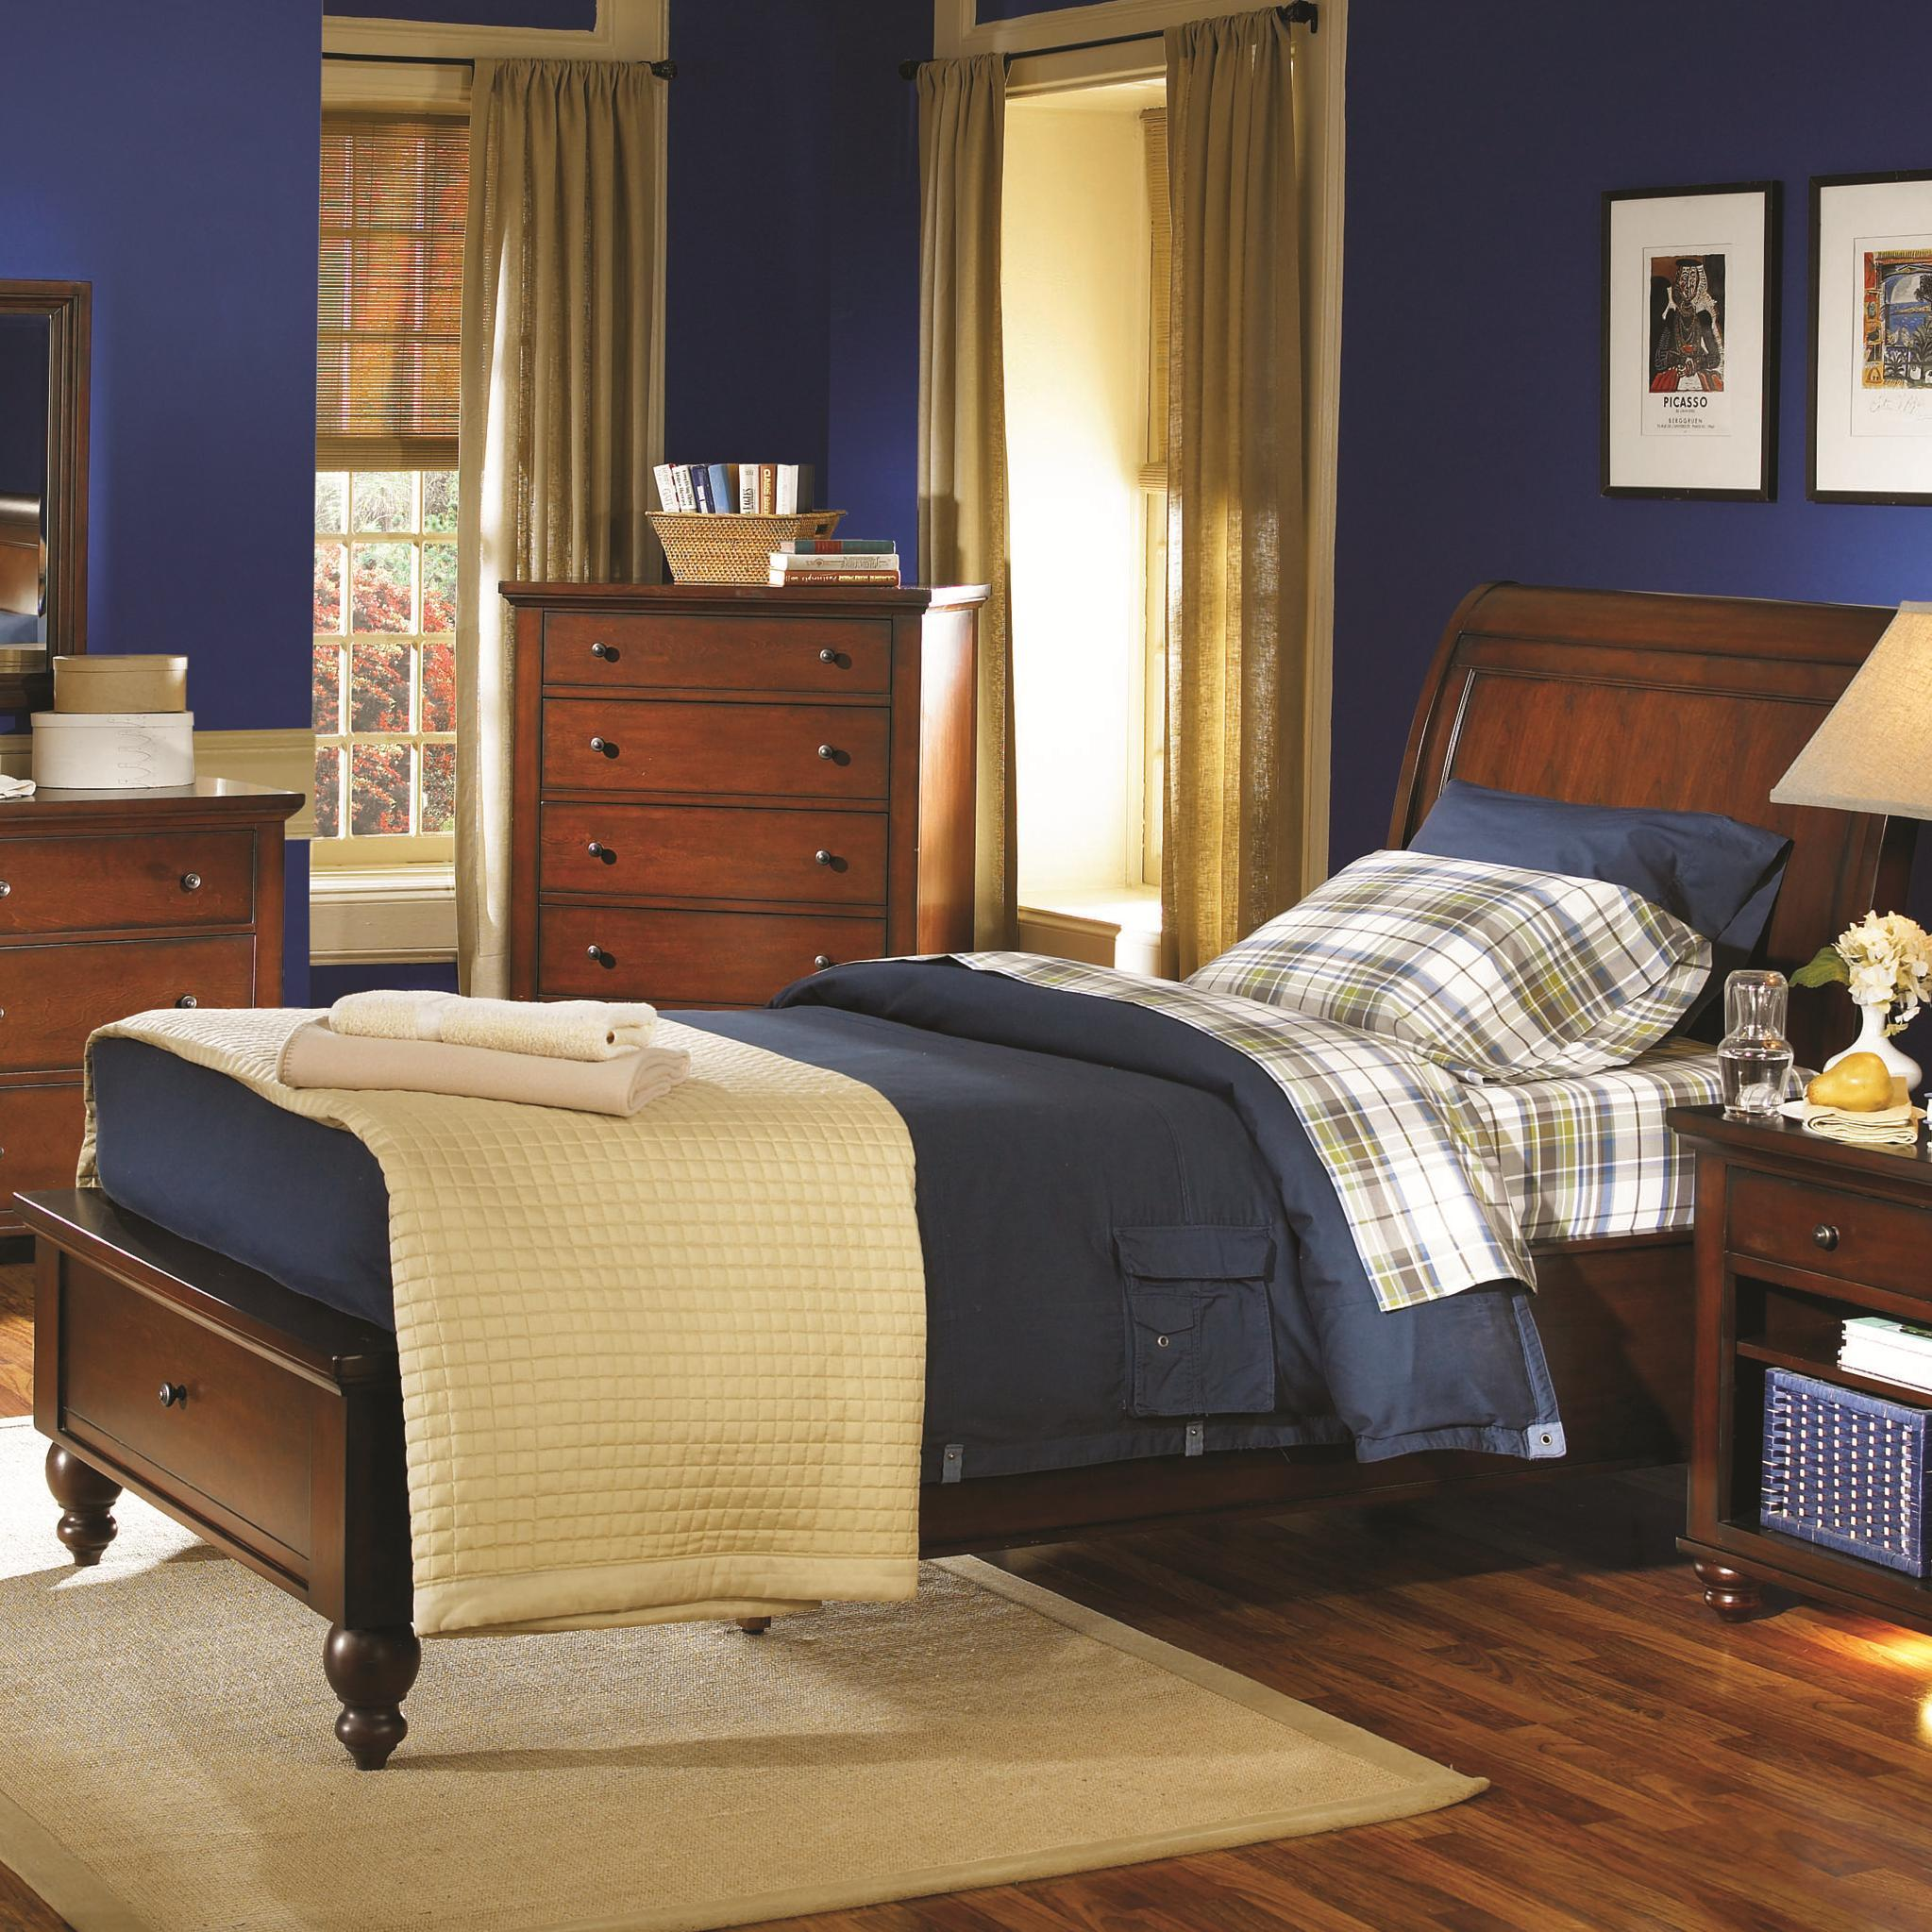 Aspenhome Cambridge Twin Storage Sleigh Bed - Item Number: ICB-500-BCH+503D+502